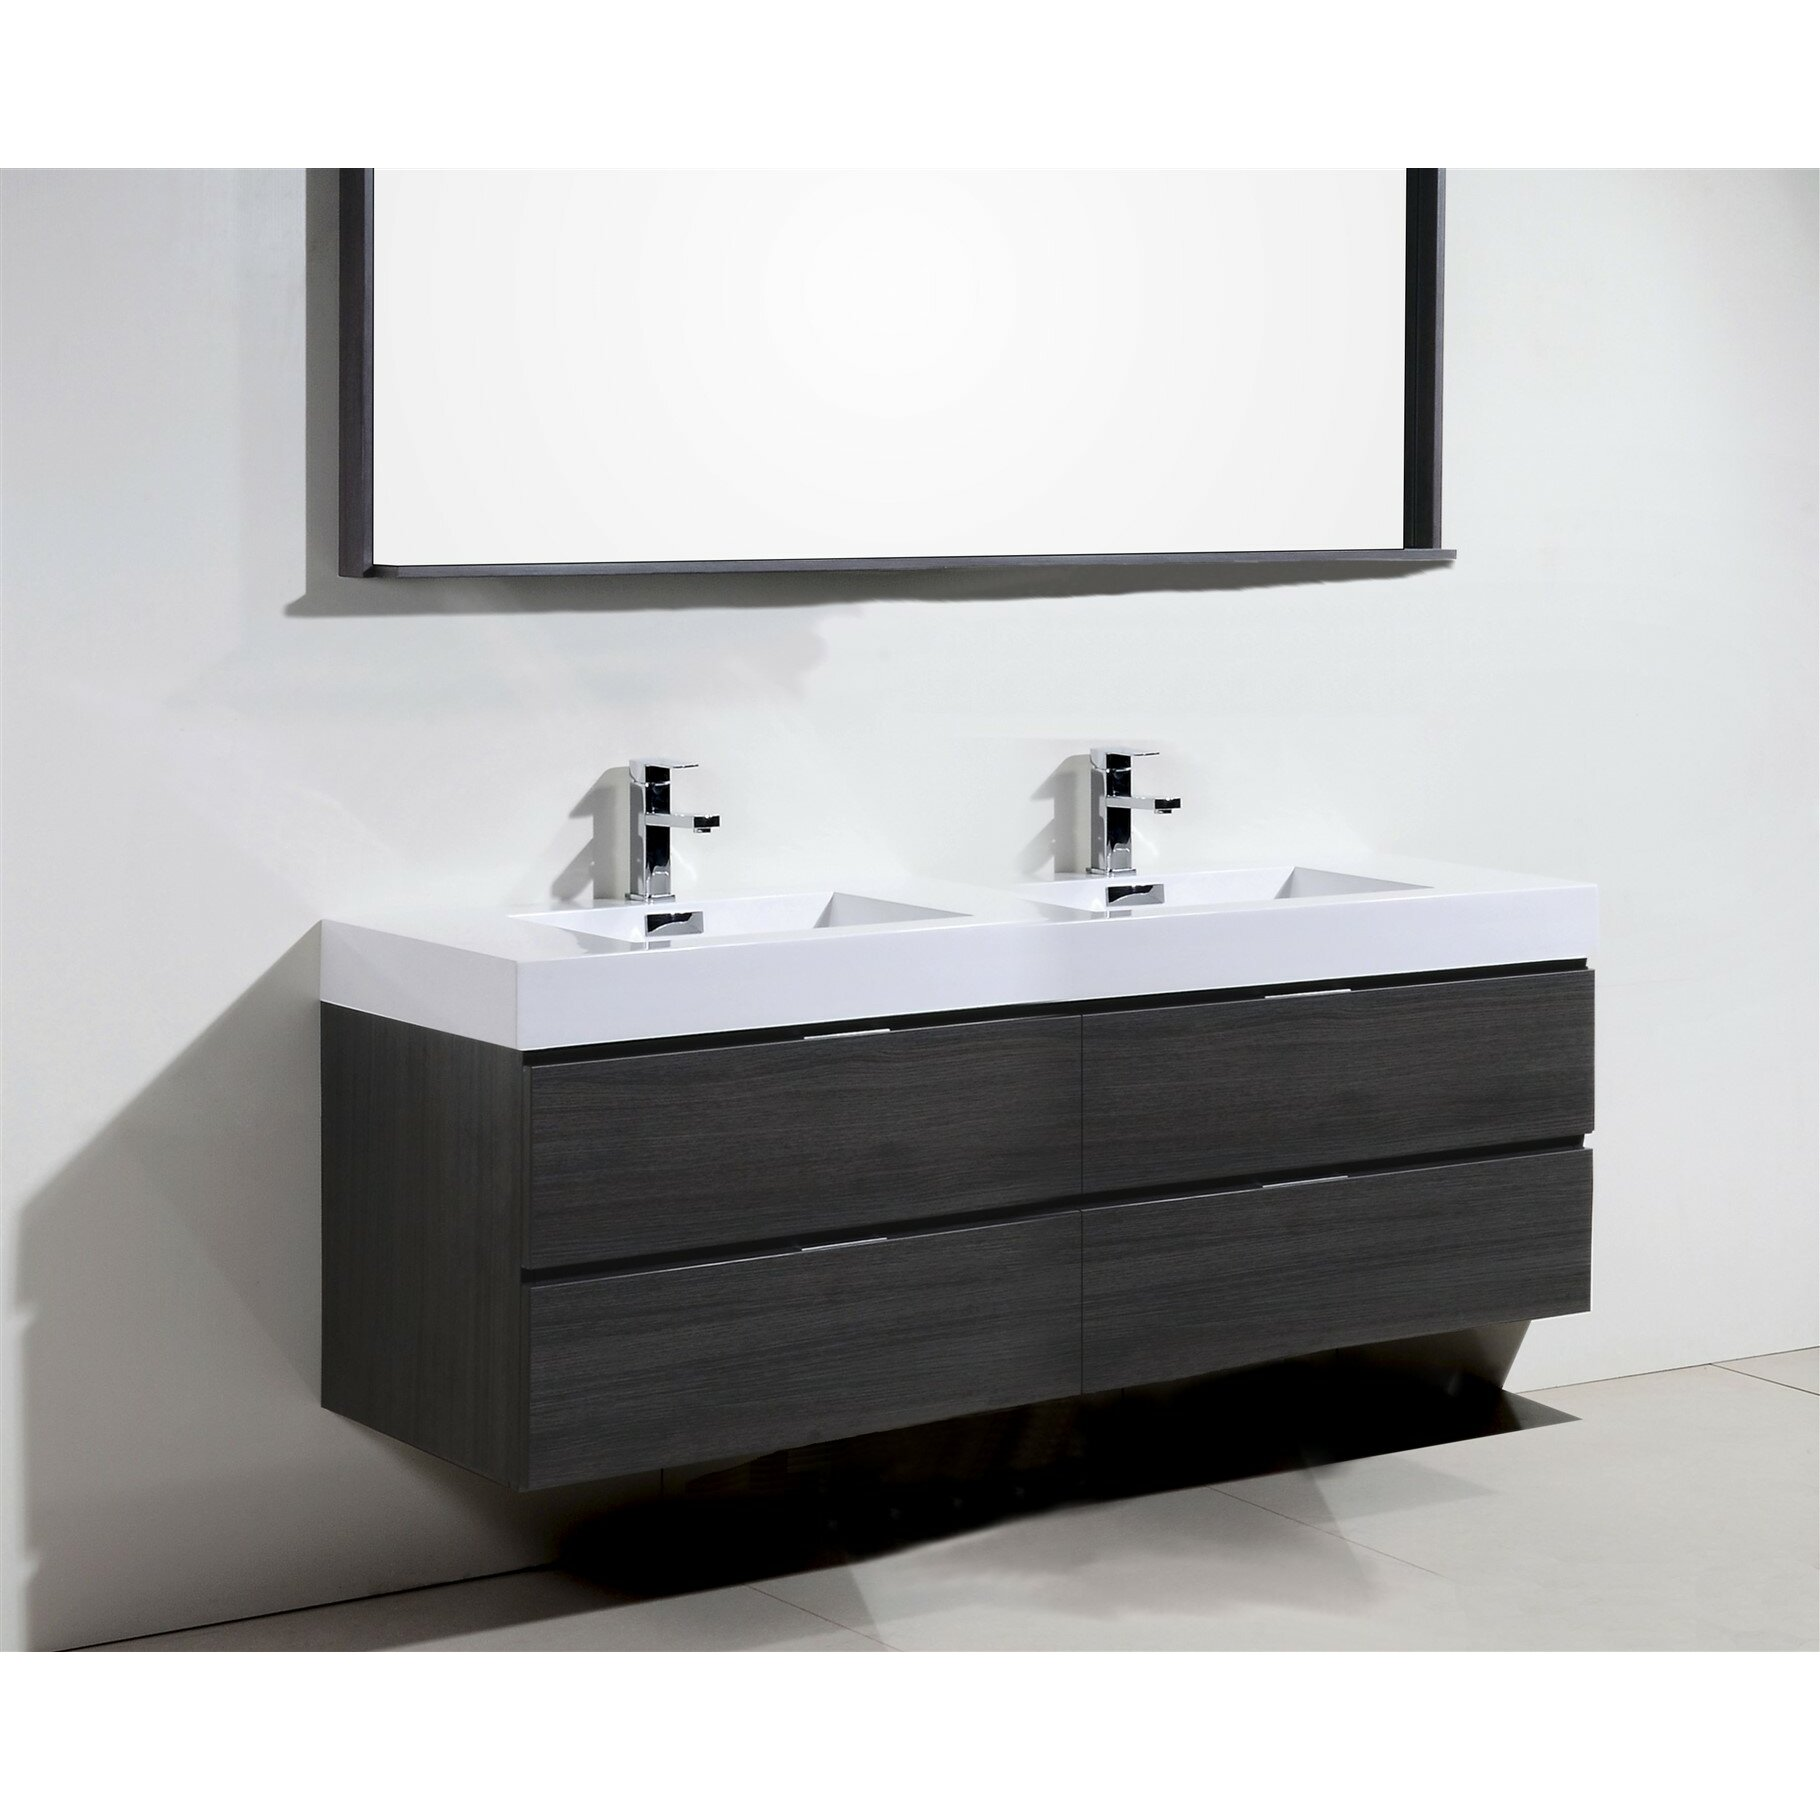 Modern bathroom cabinet - Wade Logan Reg Tenafly Wall Mount 72 Quot Double Modern Bathroom Vanity Set